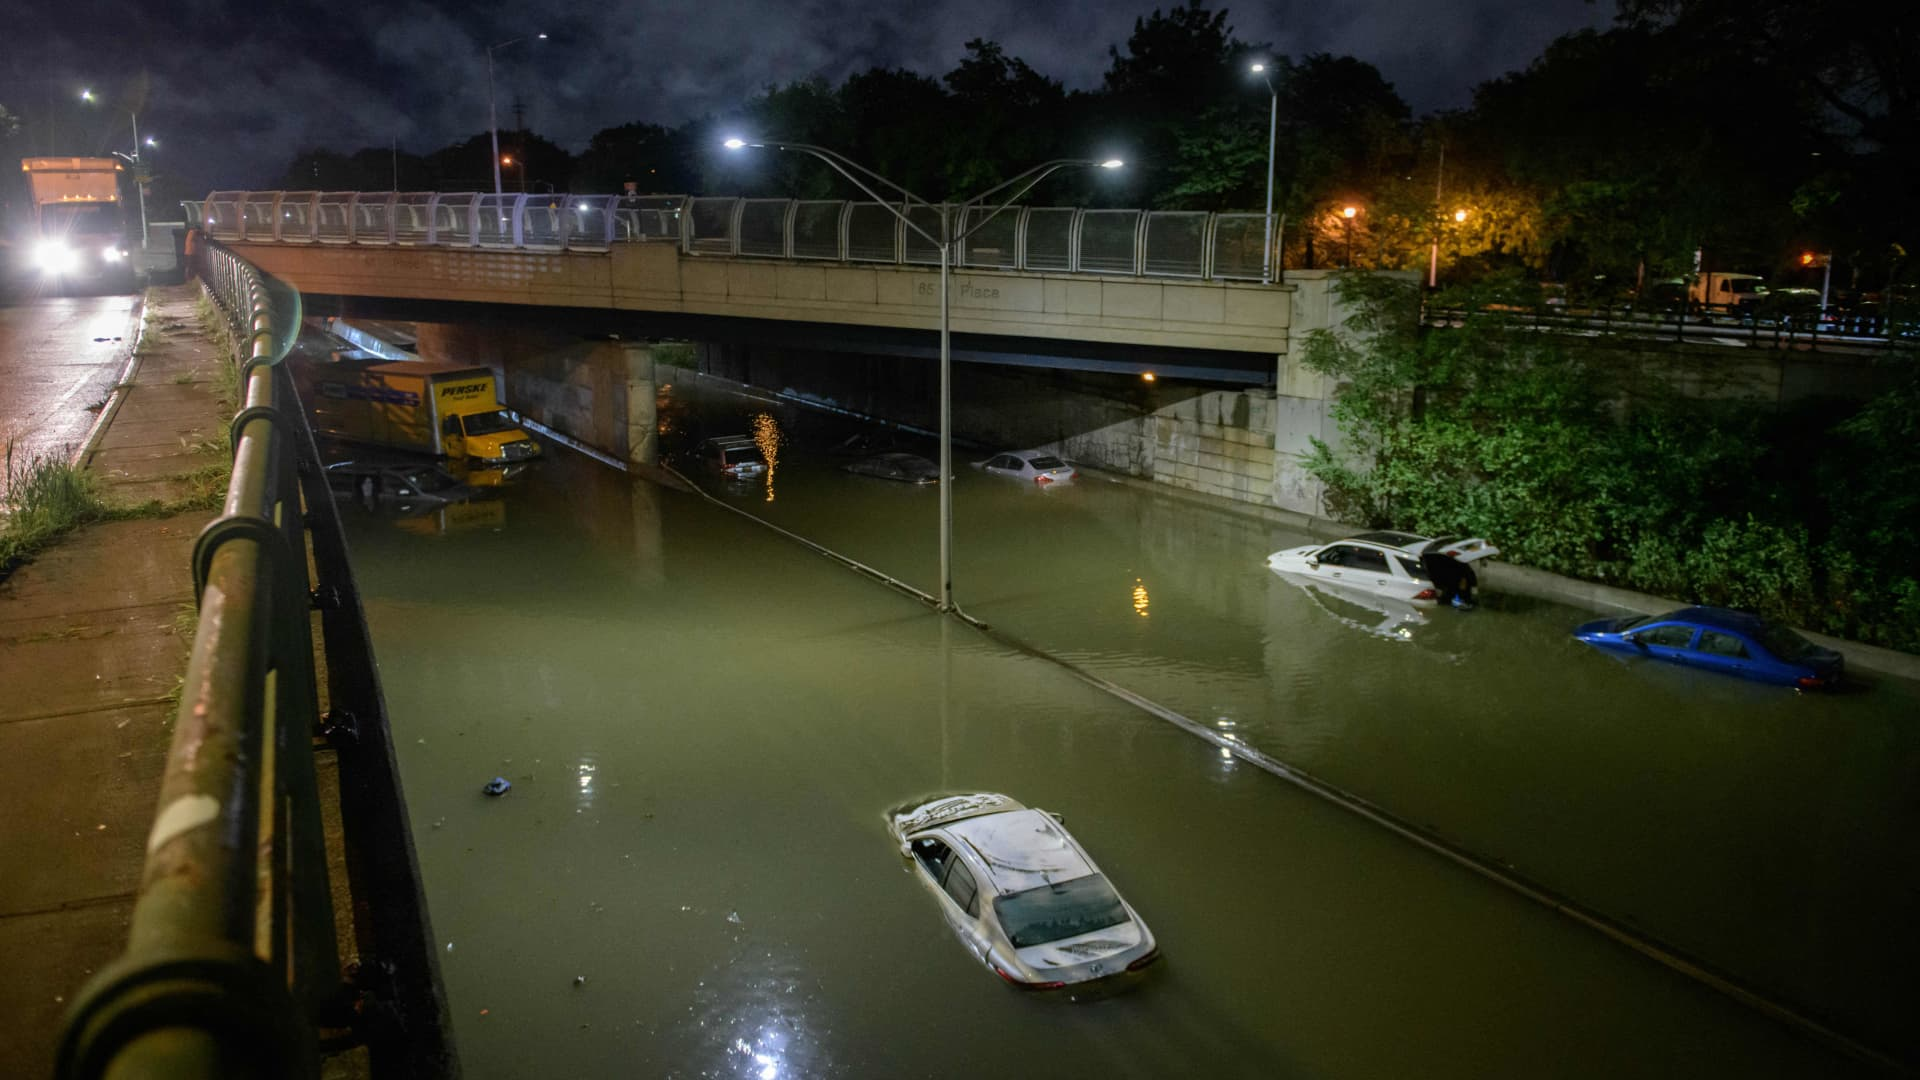 Floodwater surrounds vehicles following heavy rain on an expressway in Brooklyn, New York.